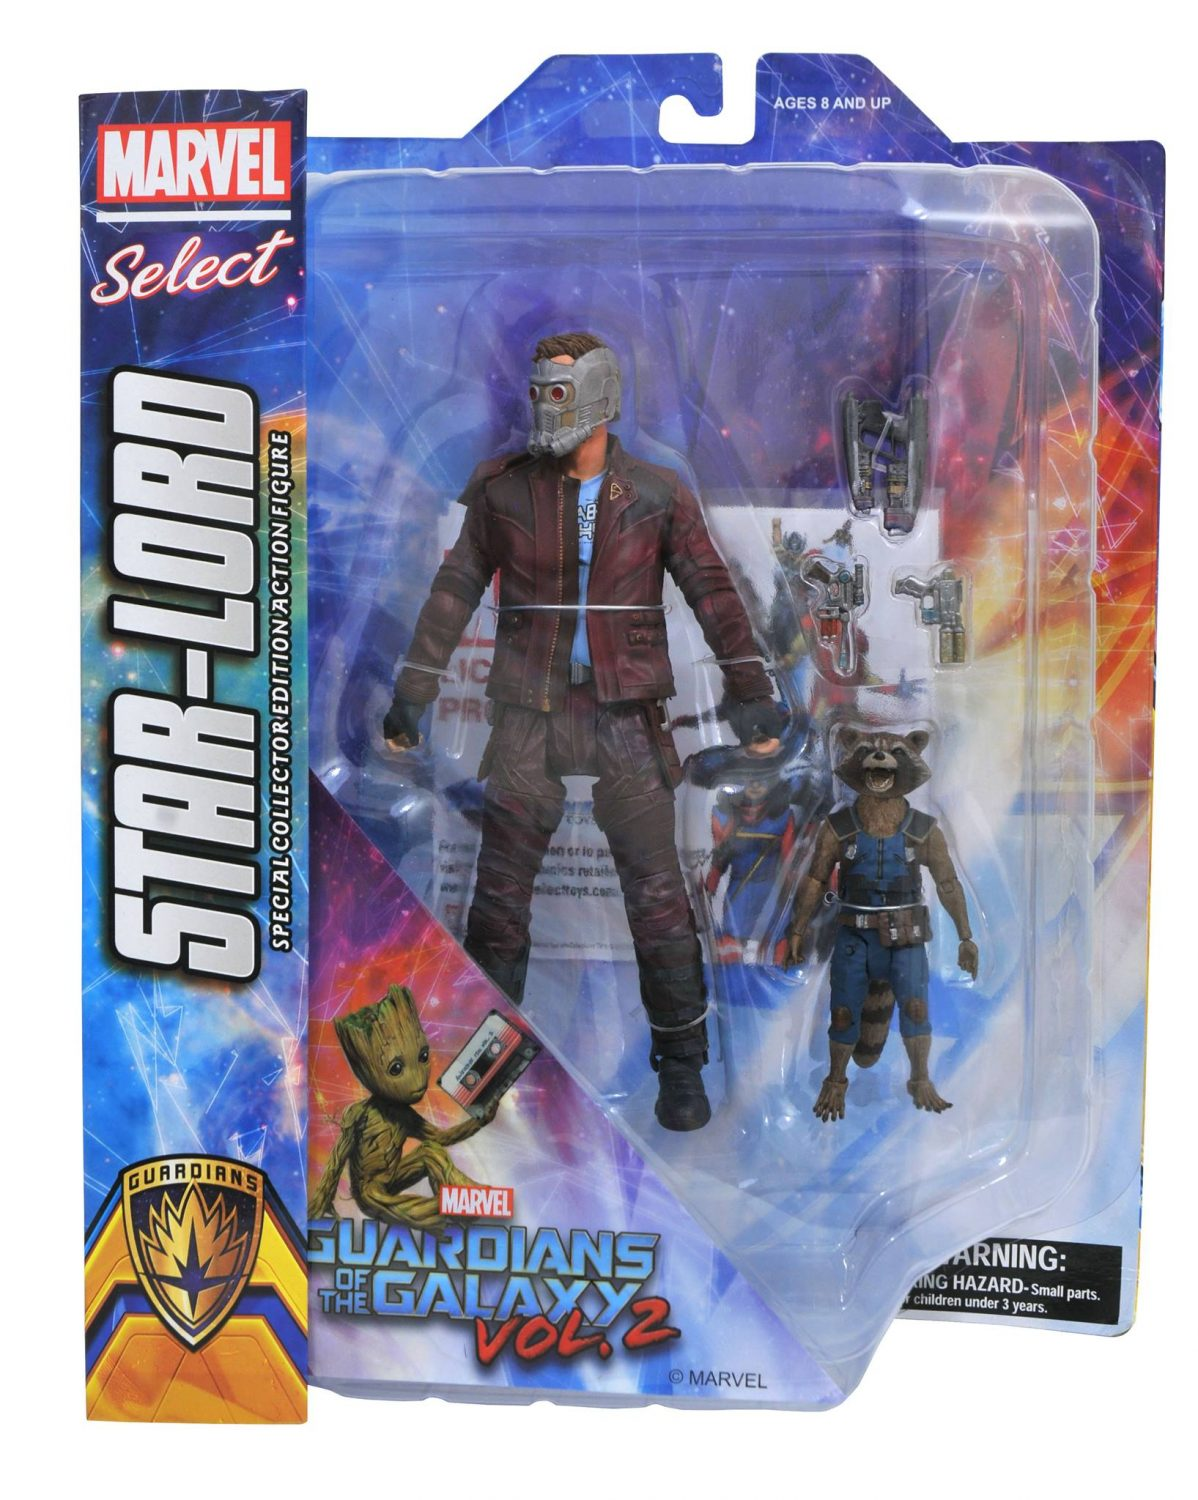 Diamond Select Toys In Stores This Week – Spidey, Cthulhu & Guardians Of The Galaxy